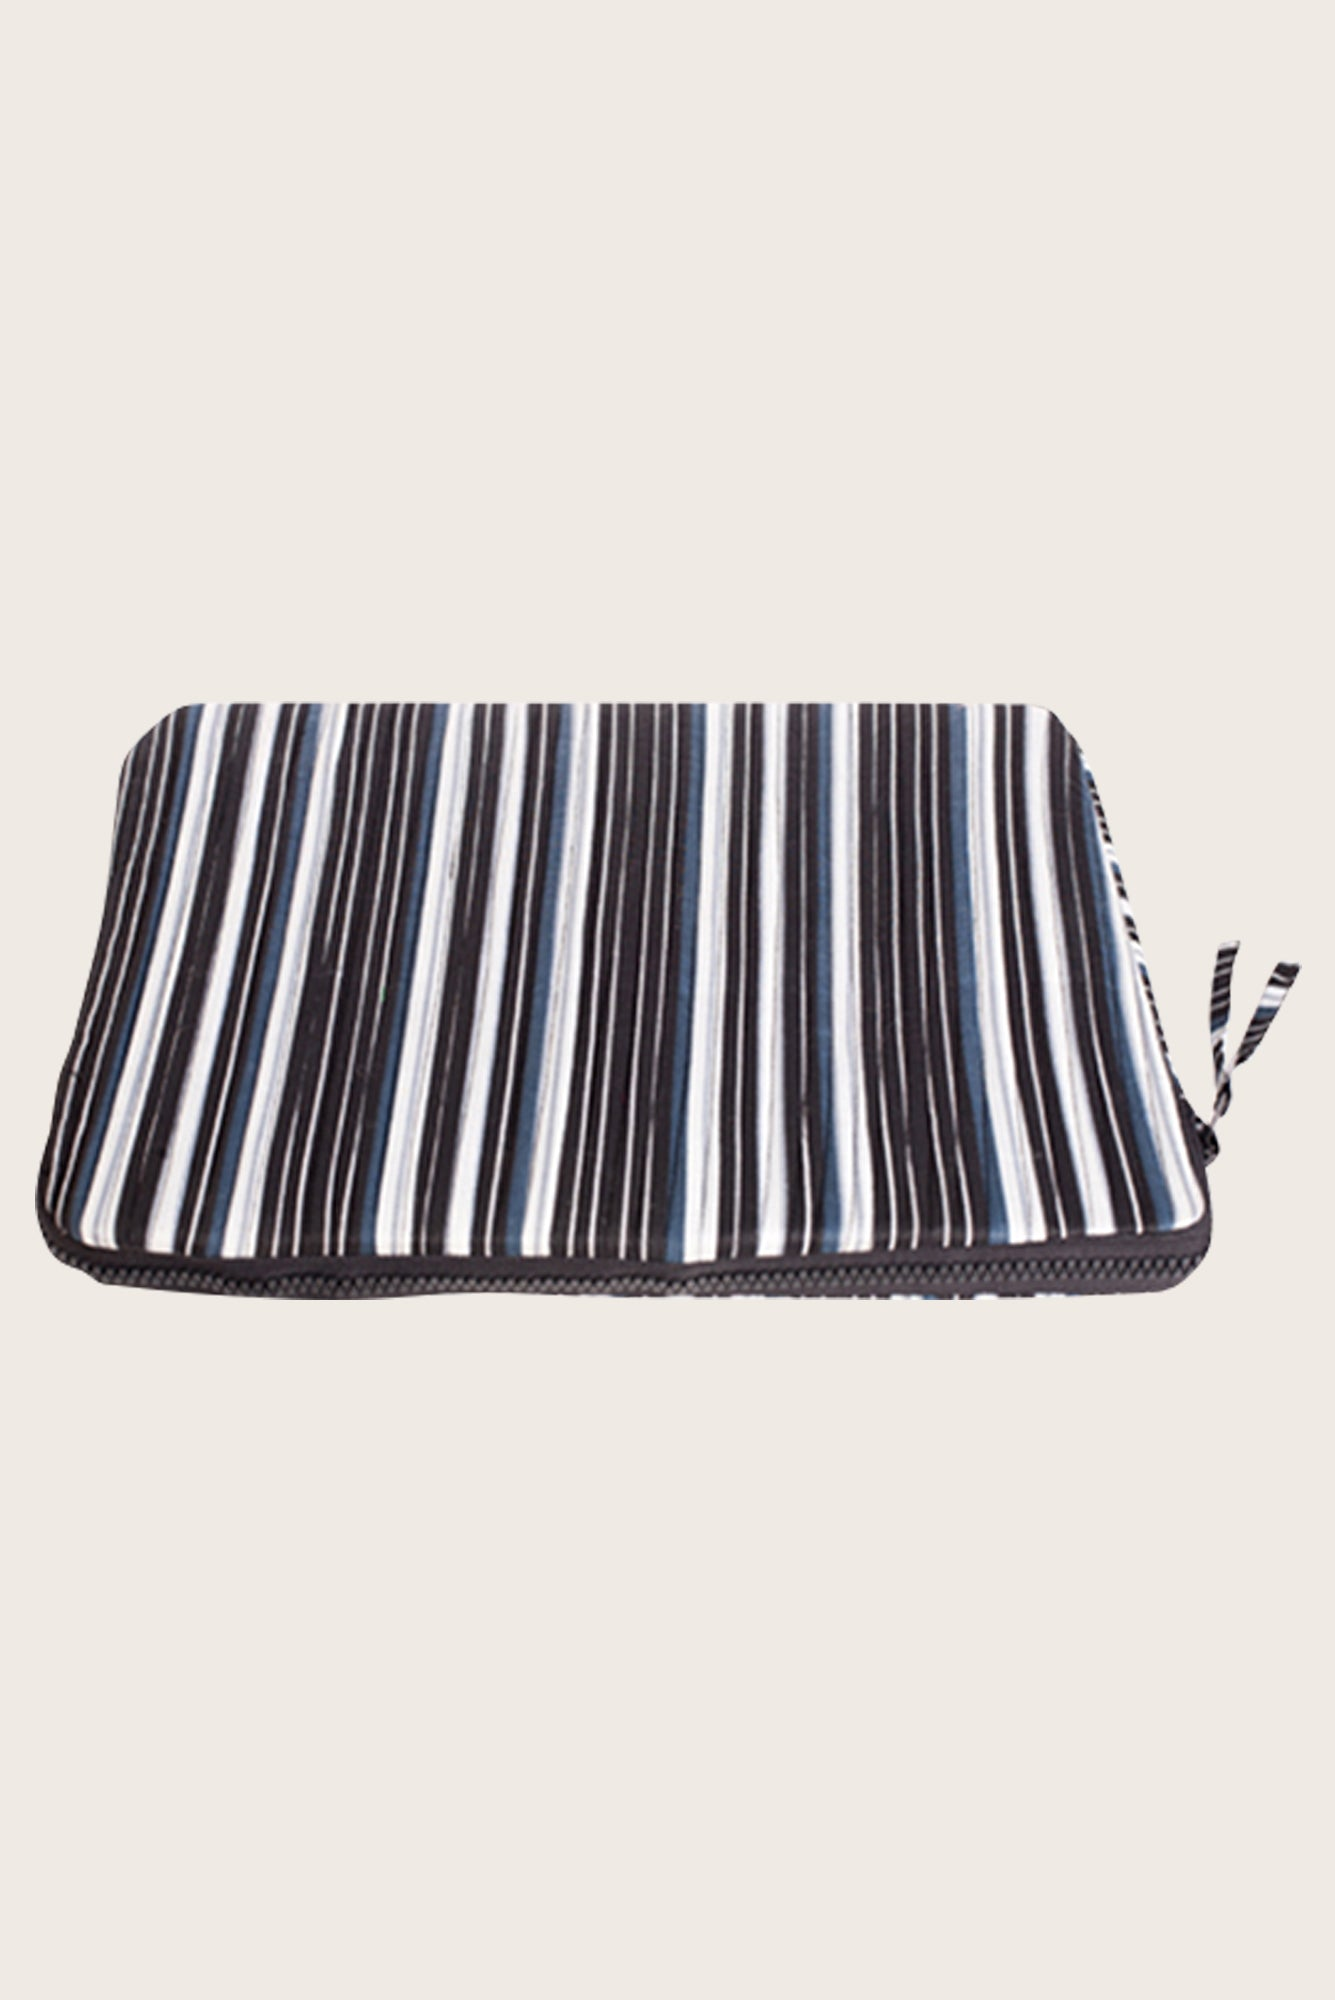 Grey Stripes Laptop Sleeve from Mayamiko